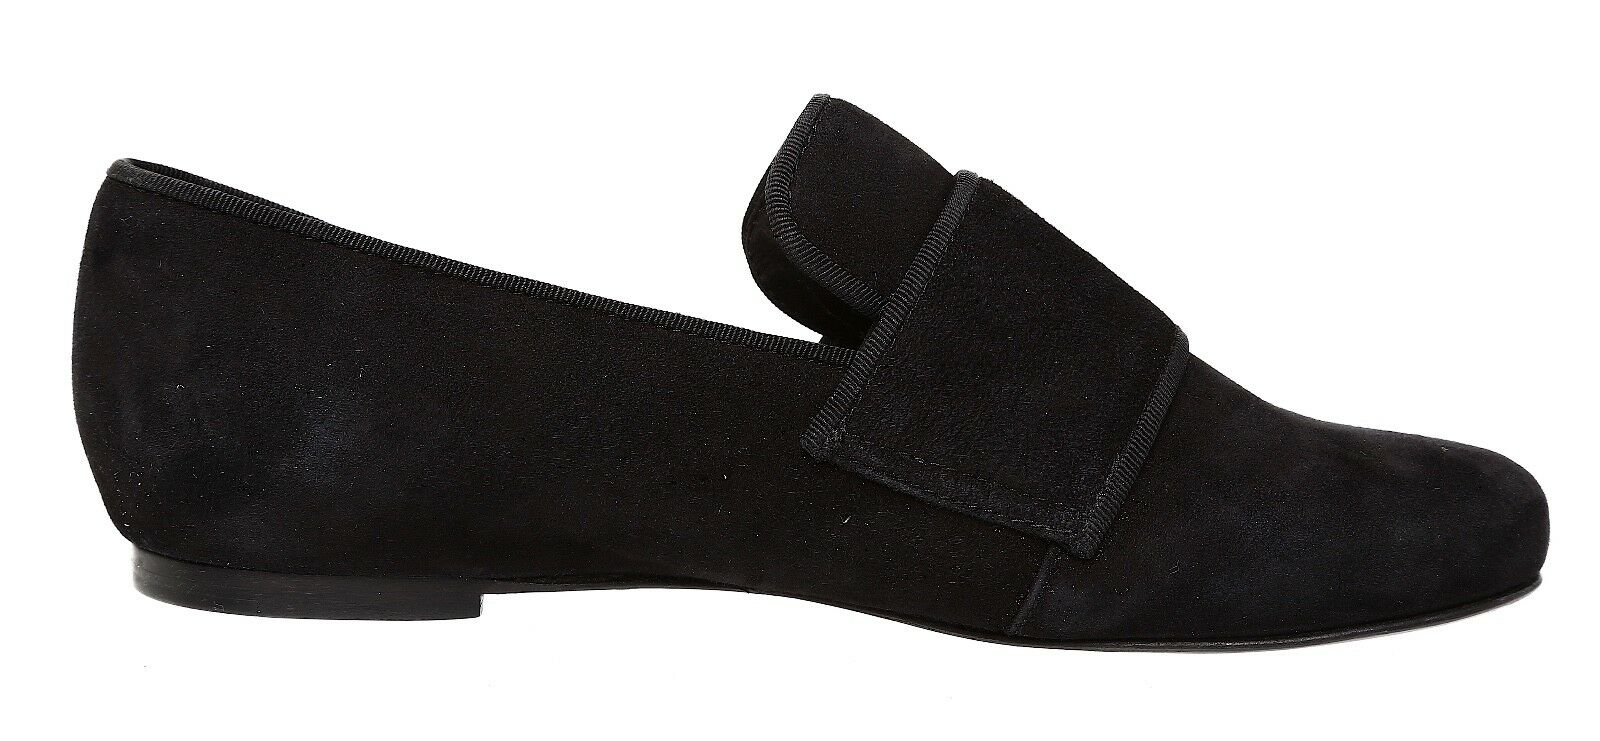 See See See By Chloe Top Strap Suede Loafer Black Women Sz 36 EUR 2868 0e9235